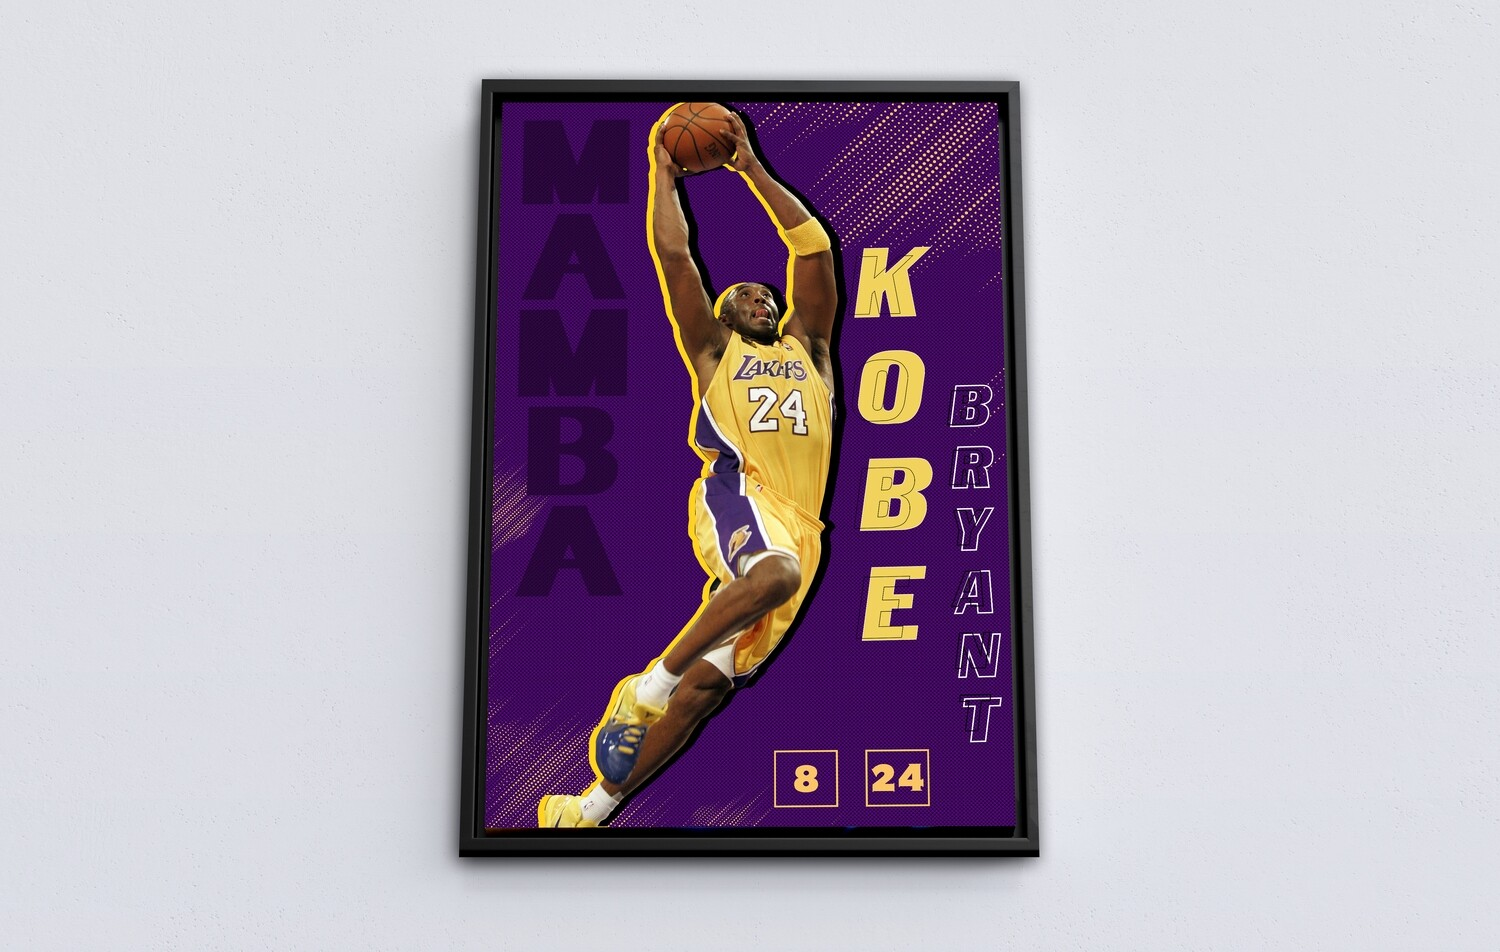 Lakers Kobe Bryant Painting-Framed Sport Wallart - Mamba Kobe Bryant Picture Printed on Acrylic Glass - Framed and Ready To Hang